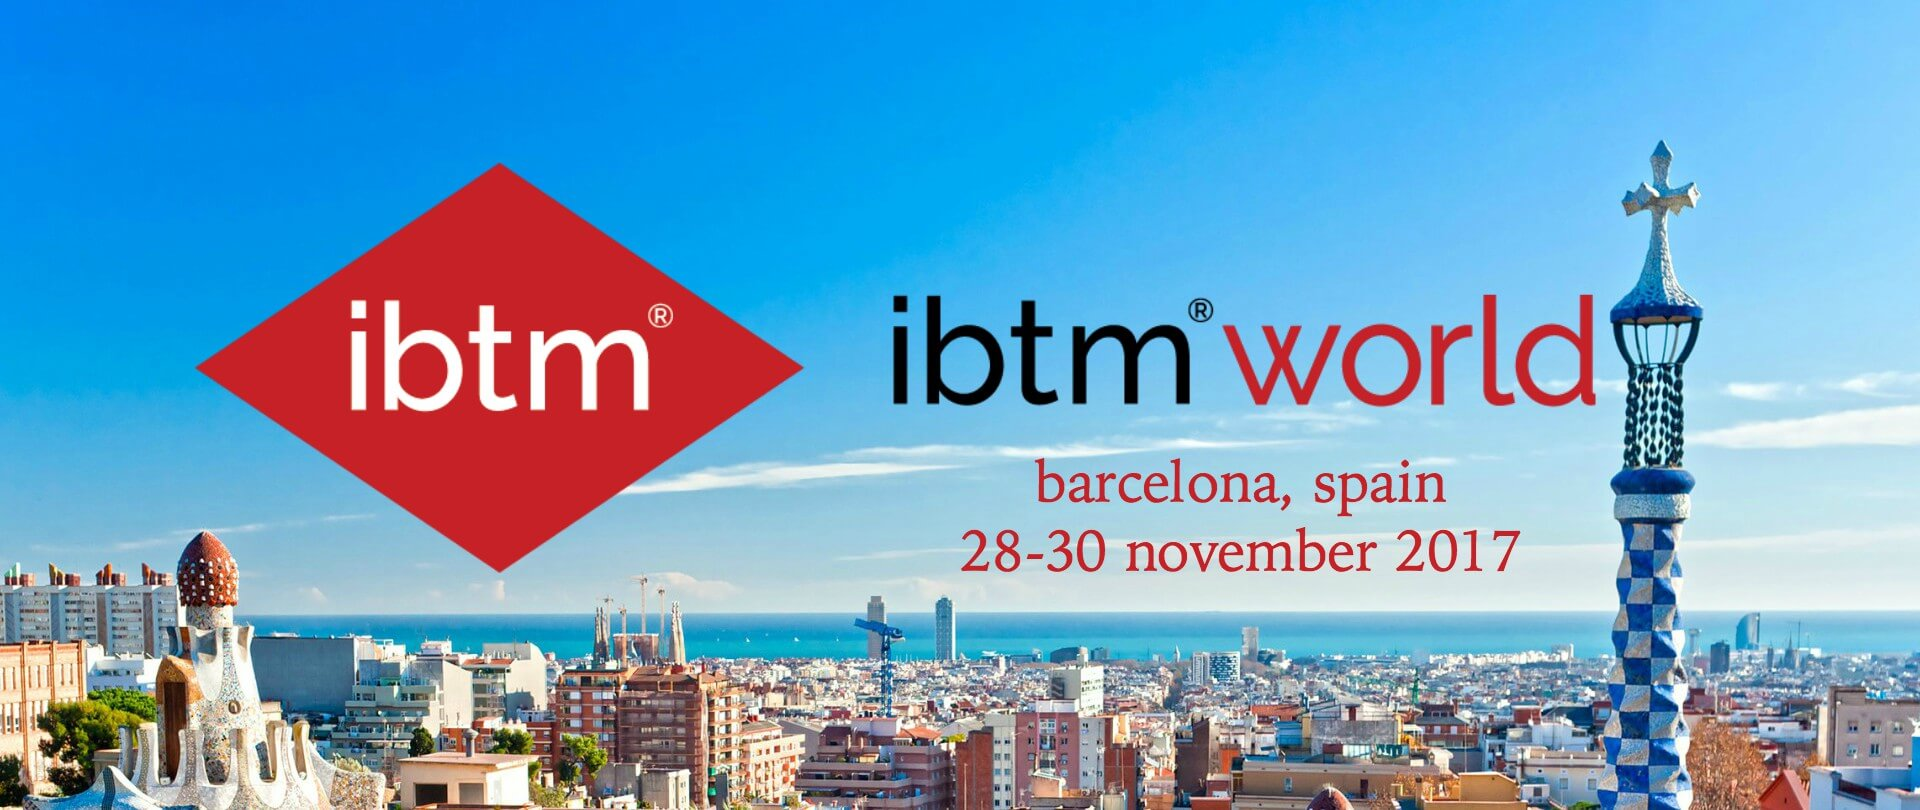 IBTM World - Booth # L 16